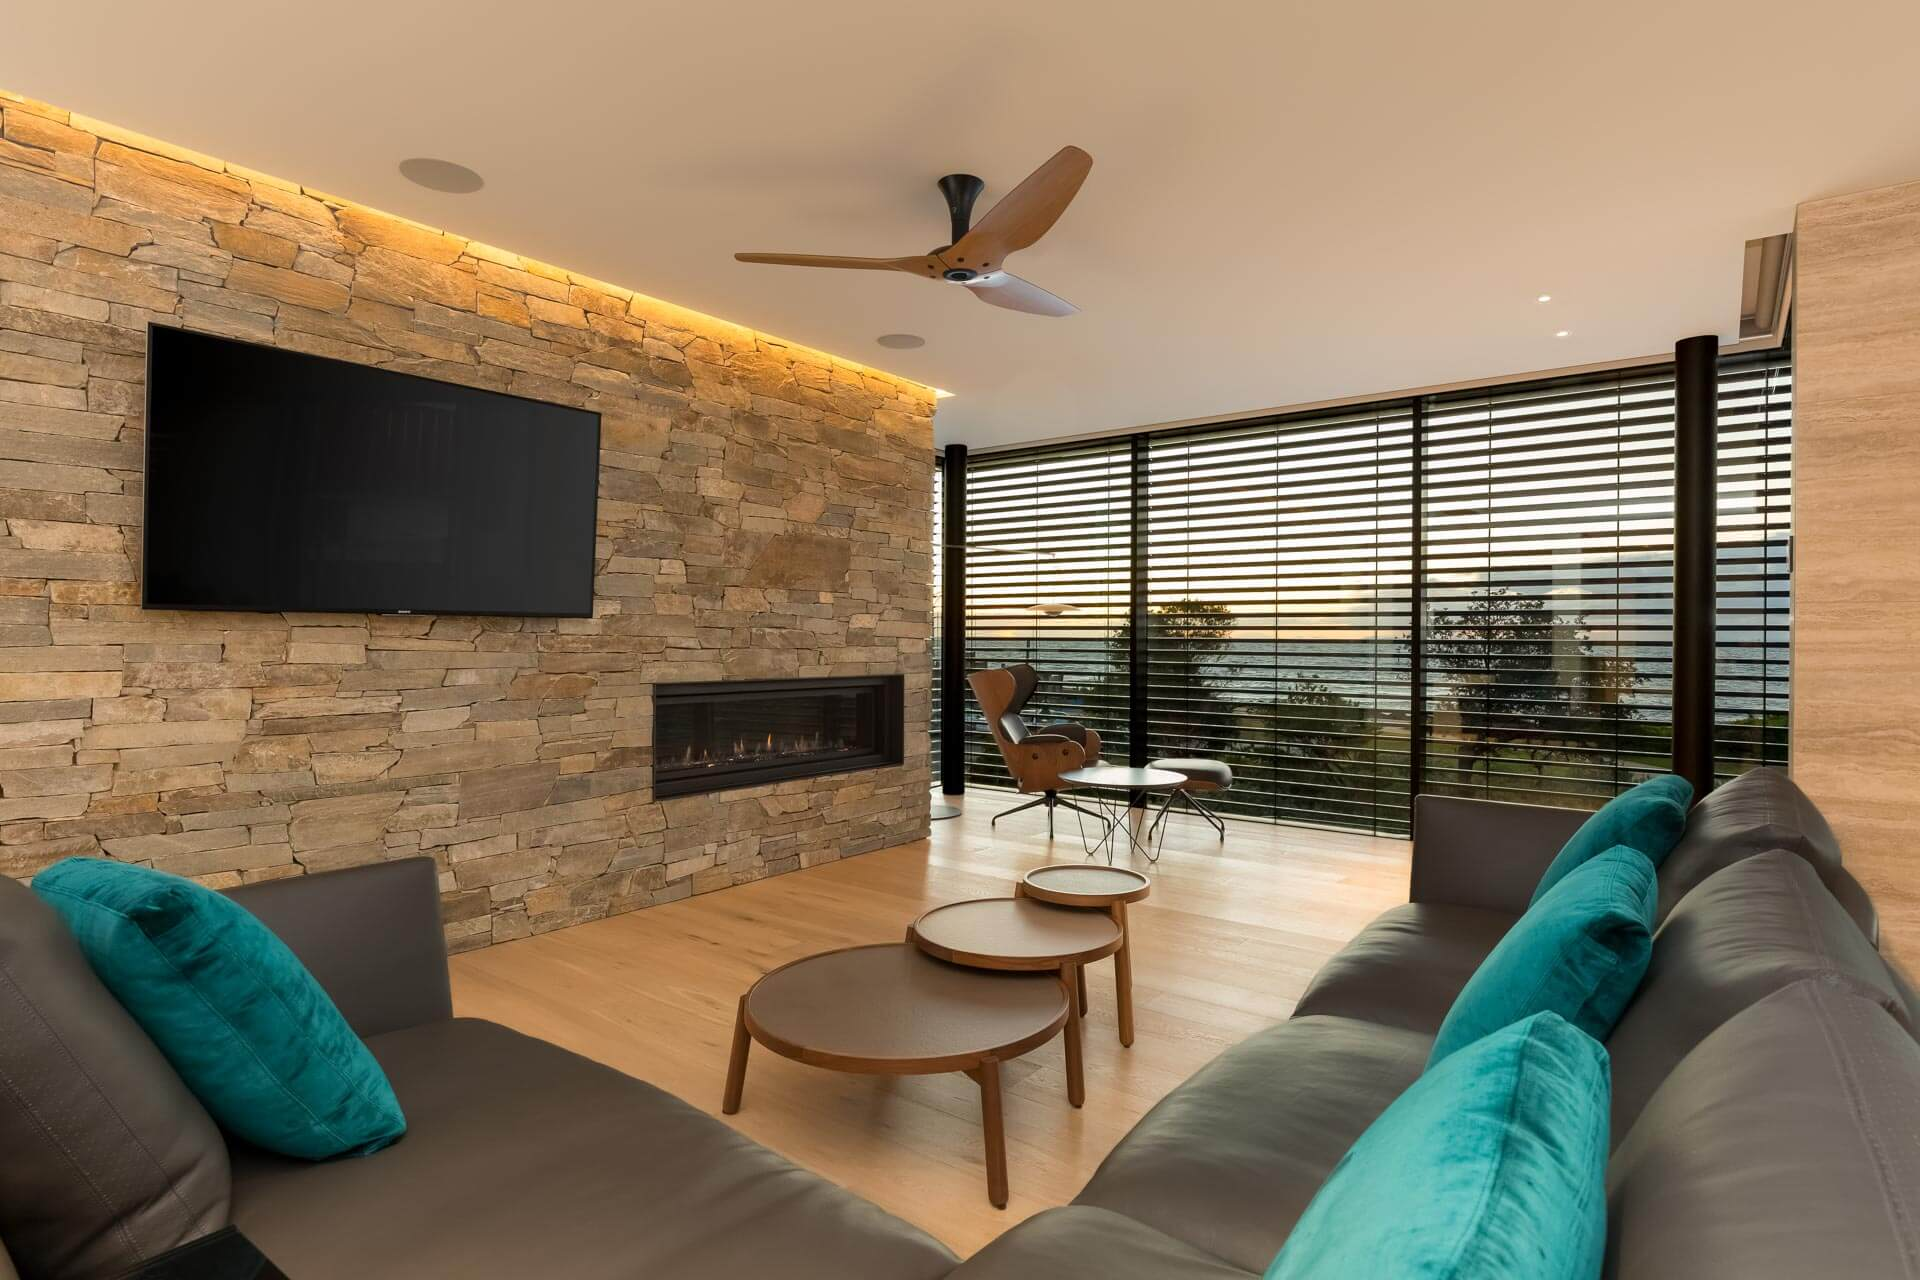 Custom design lounge area with couch cushions stone wall tv and gas fireplace with sunset overlooking Brighton bayside melbourne Architectural Photography Roger Thompson Photography